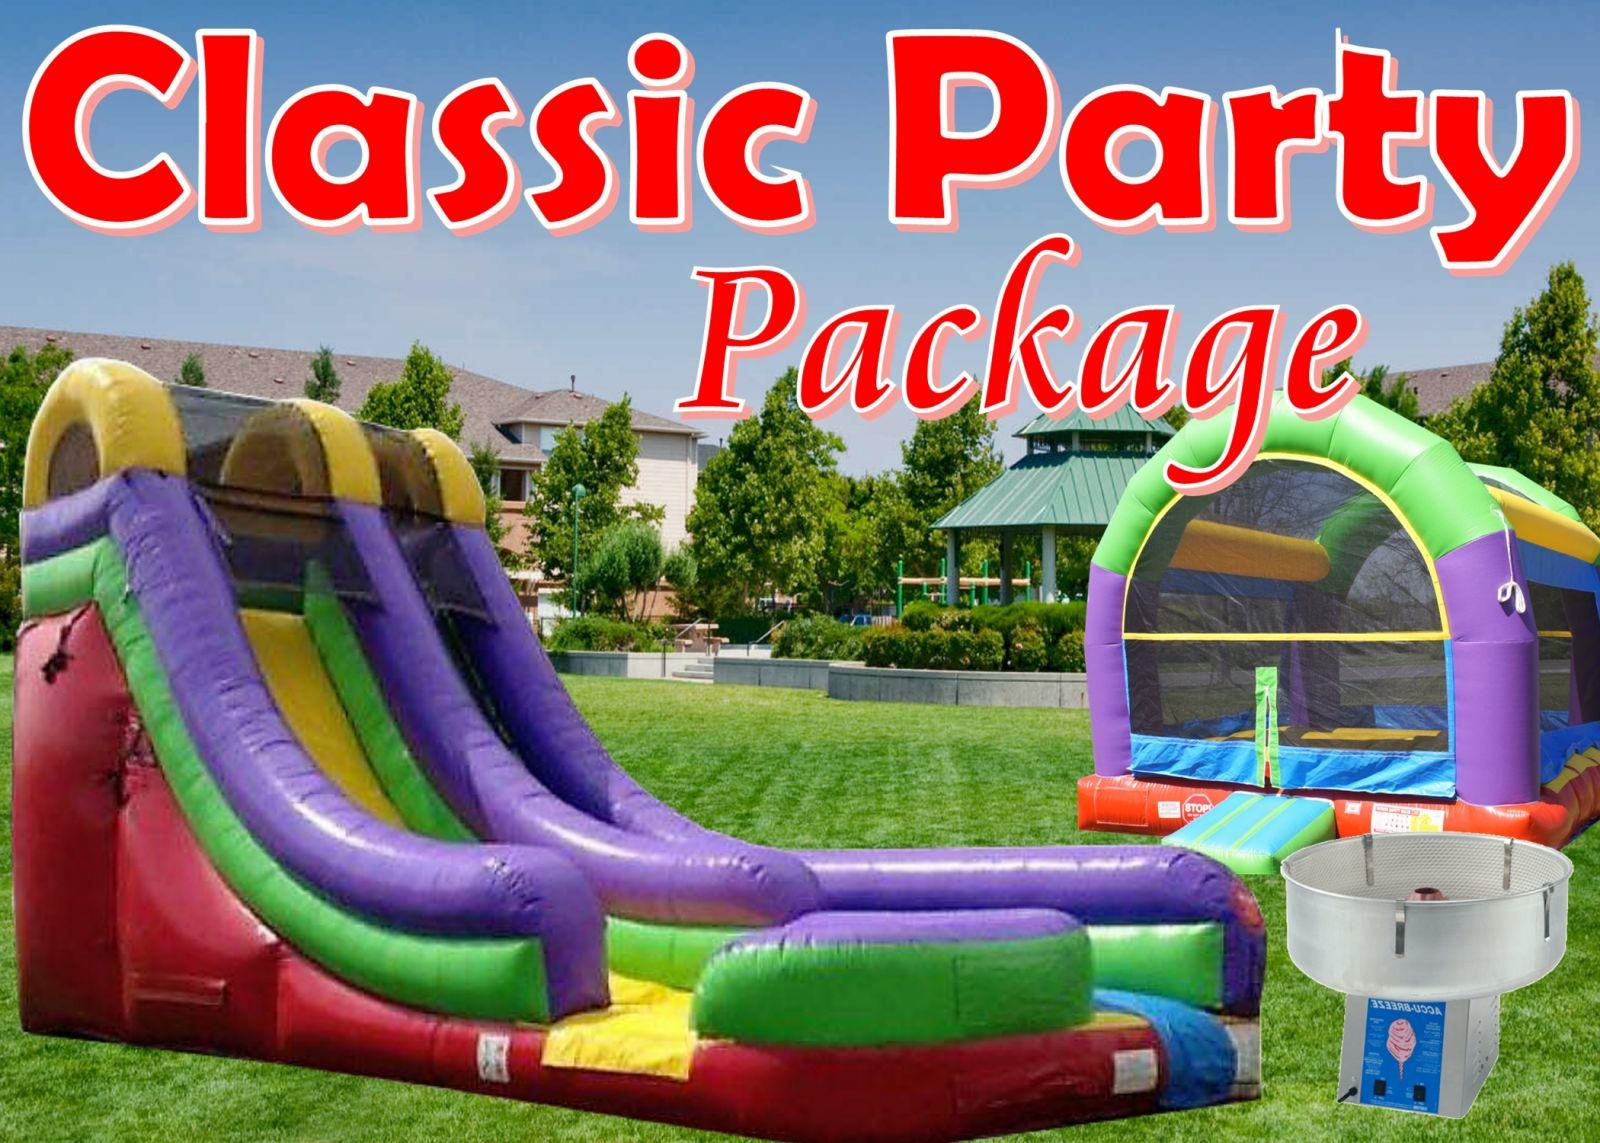 Inflatable party package Nashville Tn